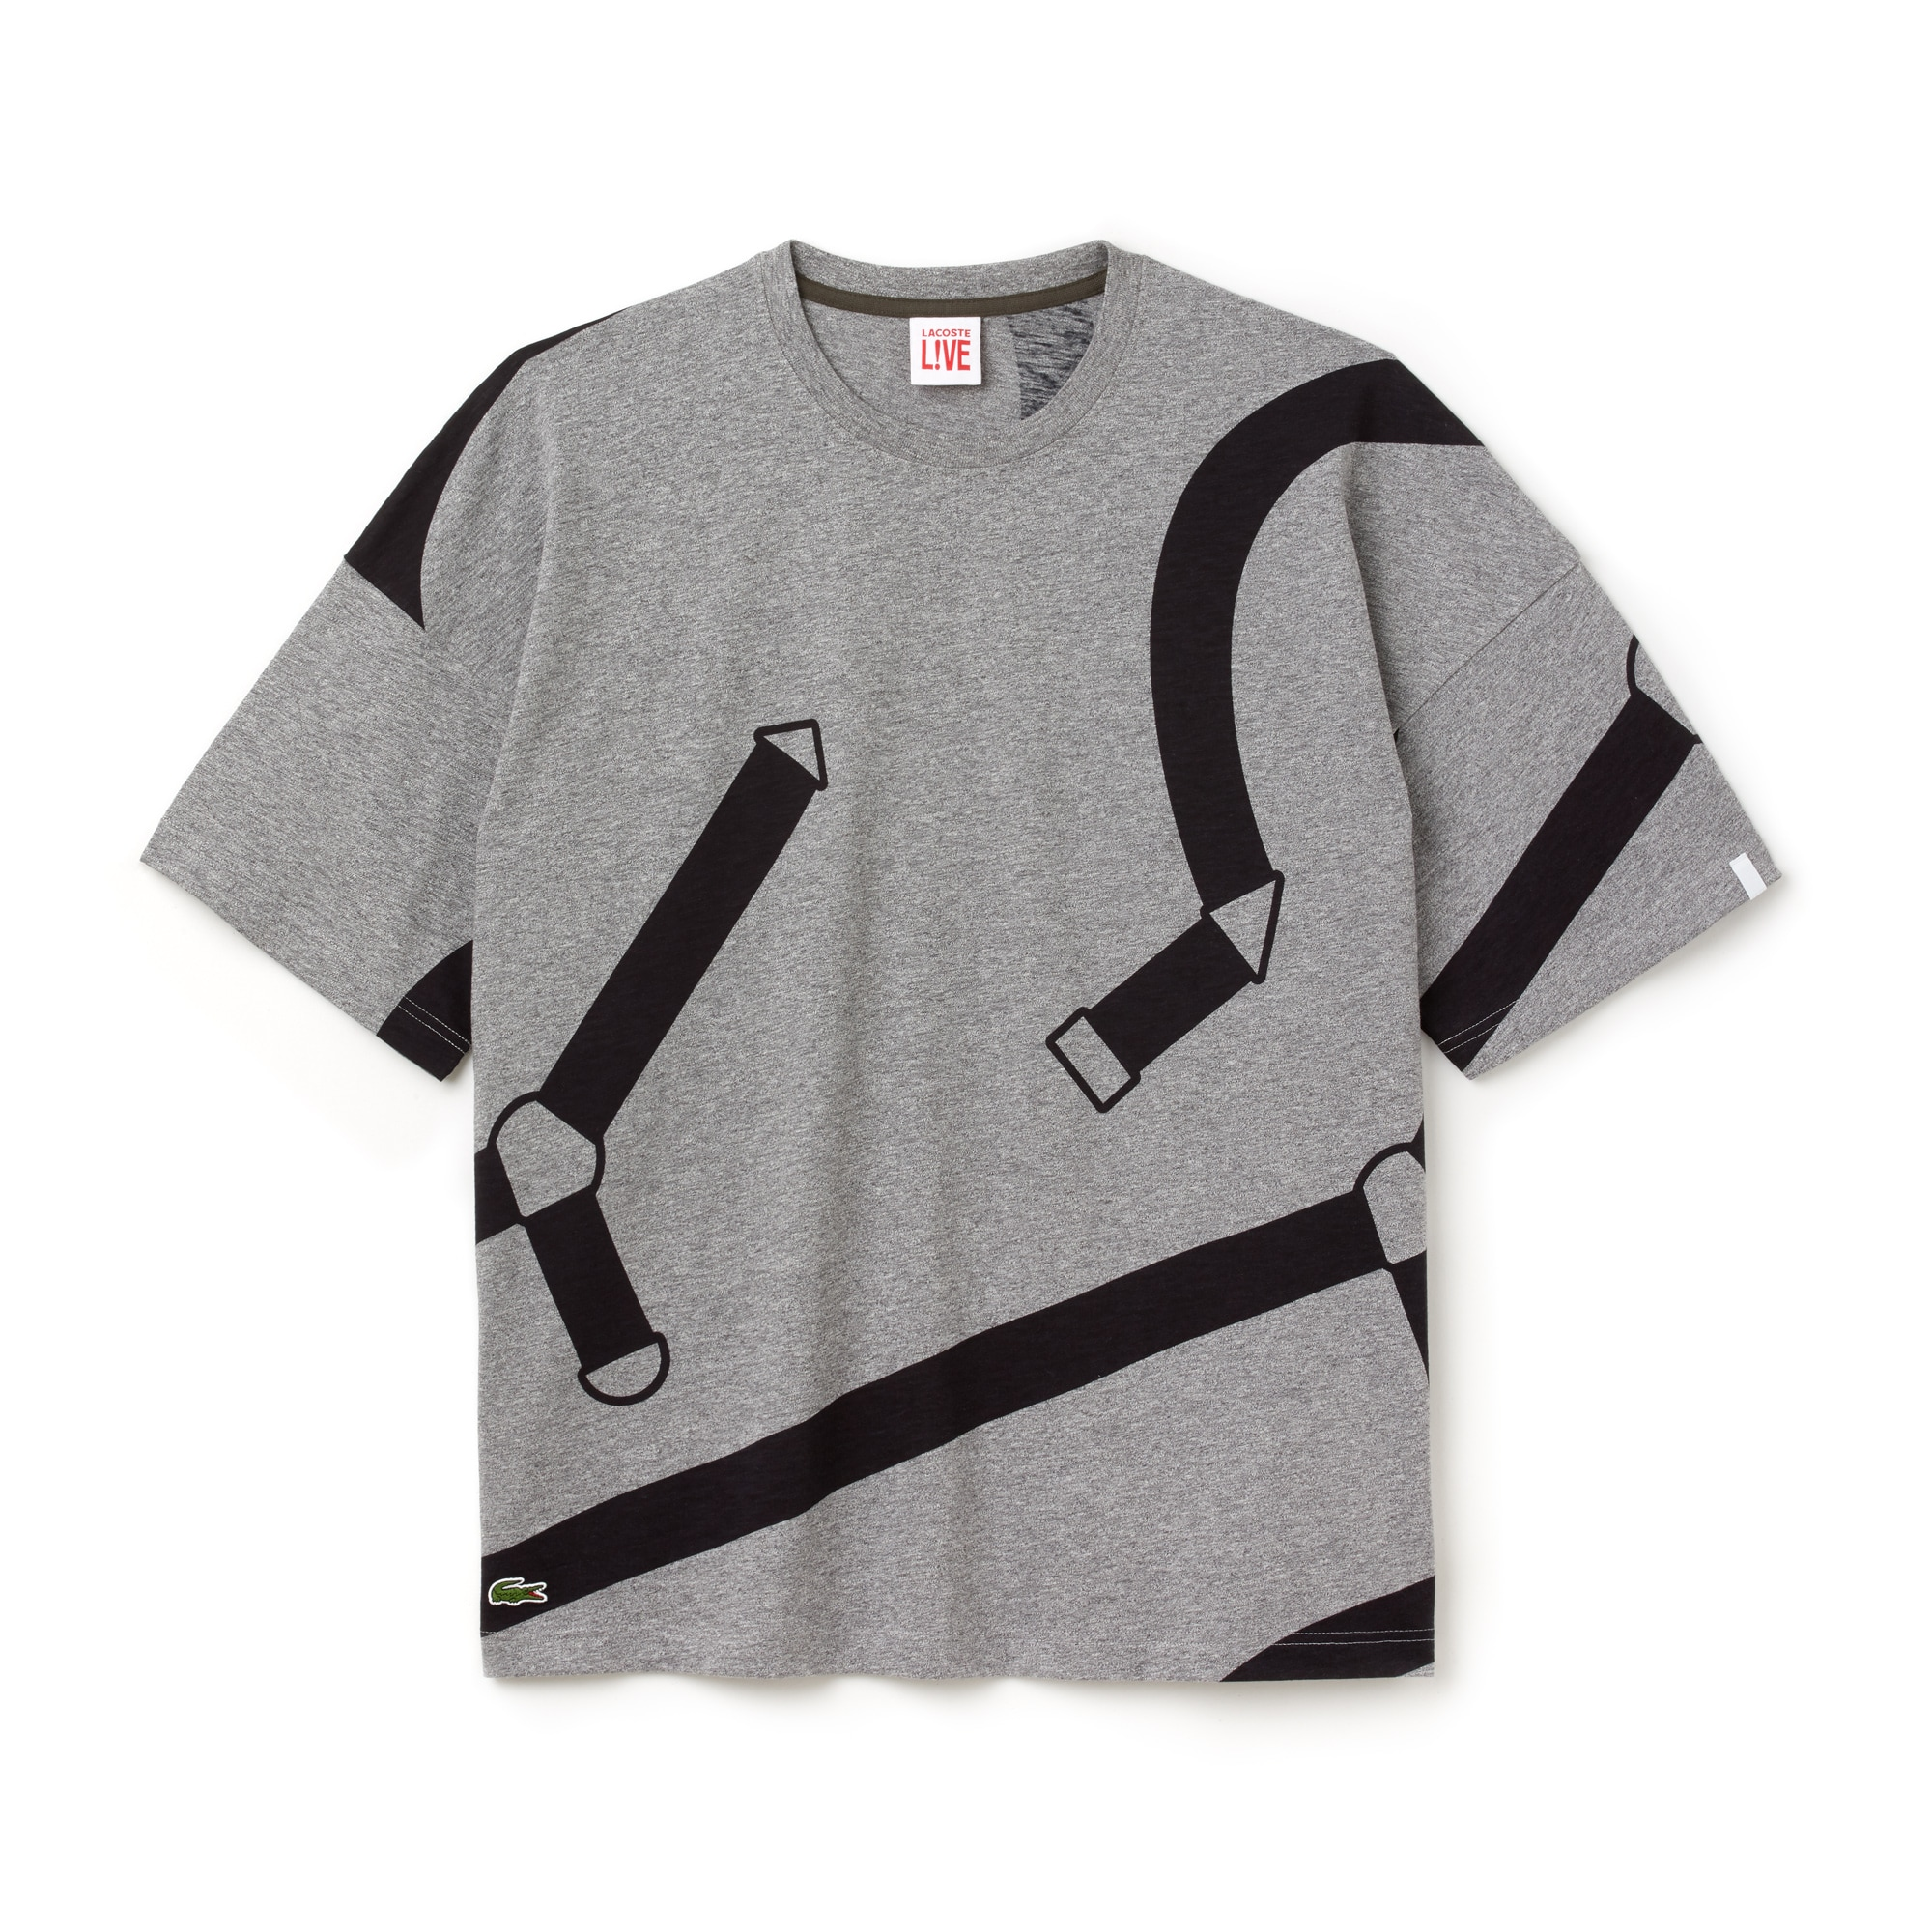 라코스테 Lacoste Mens LIVE Crew Neck Graphic Print Cotton Jersey T-shirt,Grey / Black